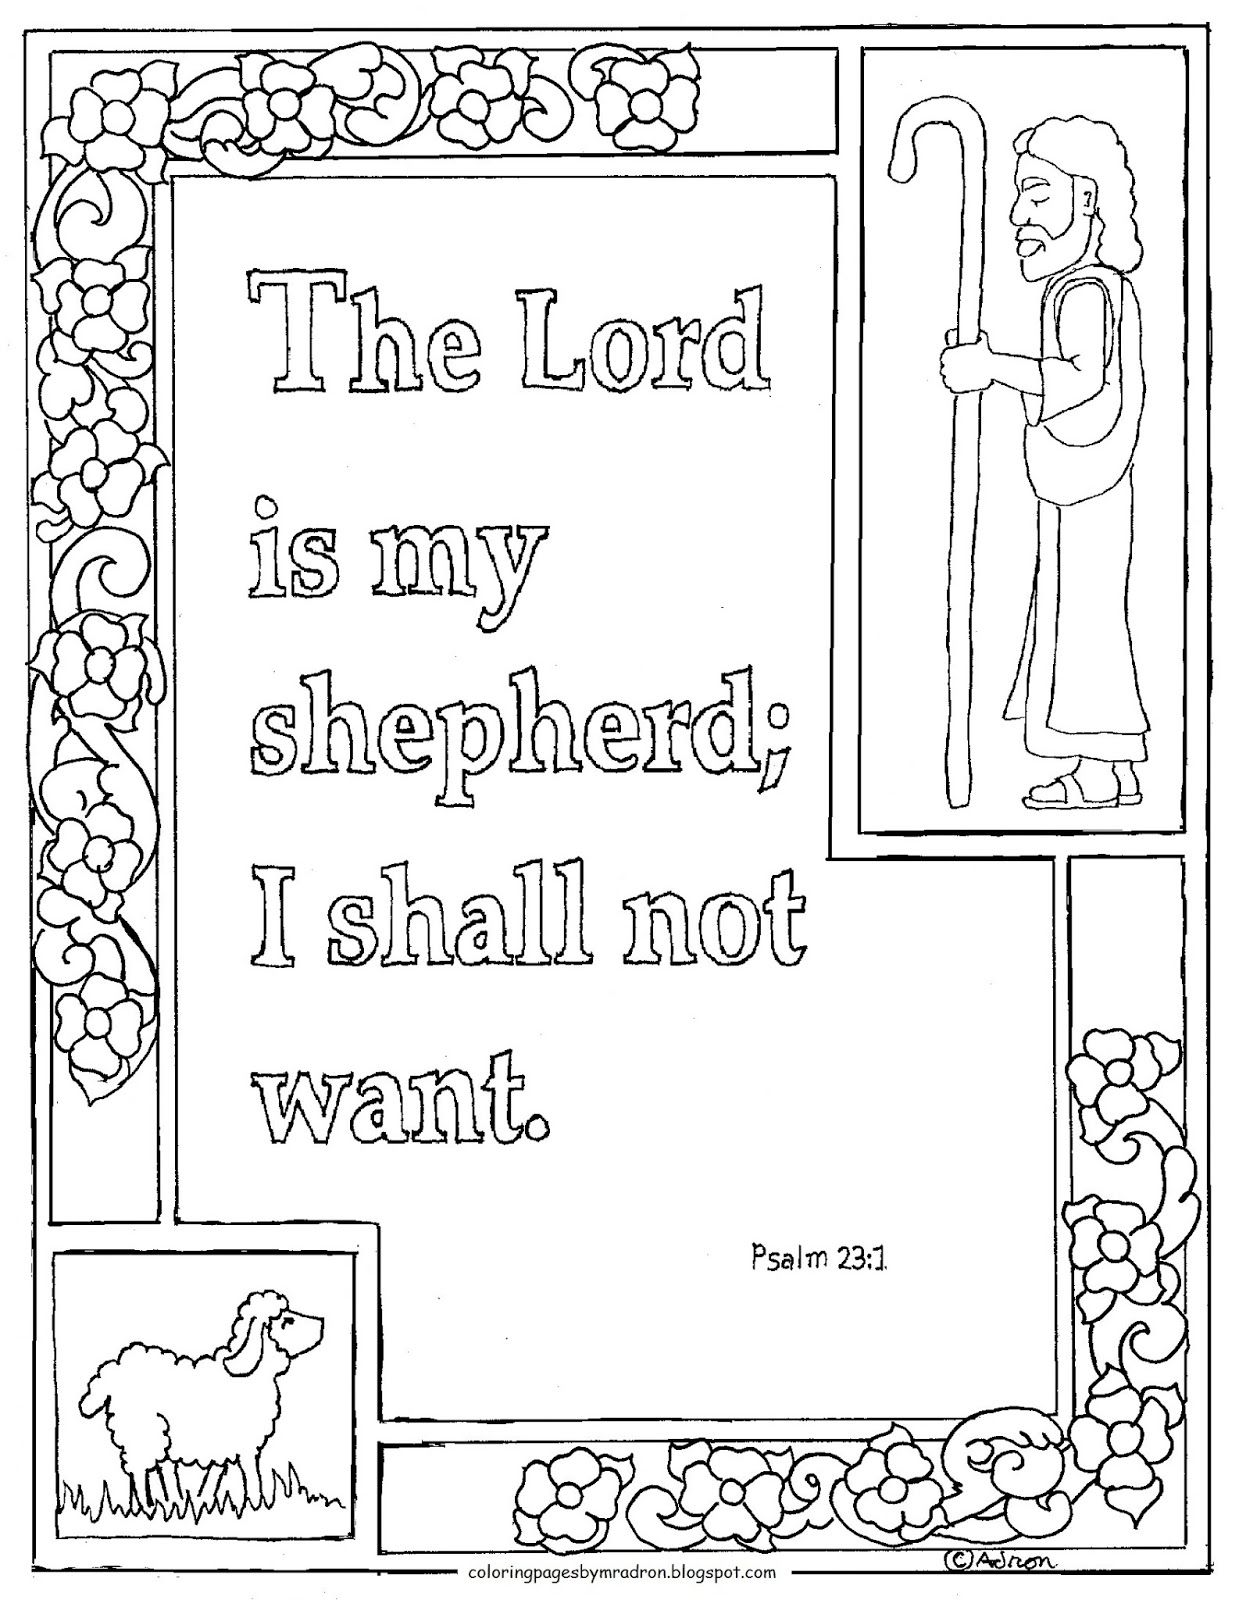 This Free Psalm 231 Printable Coloring Page Is Not Just For Kids But Adults Like To Color The Verse Too Letters In Word